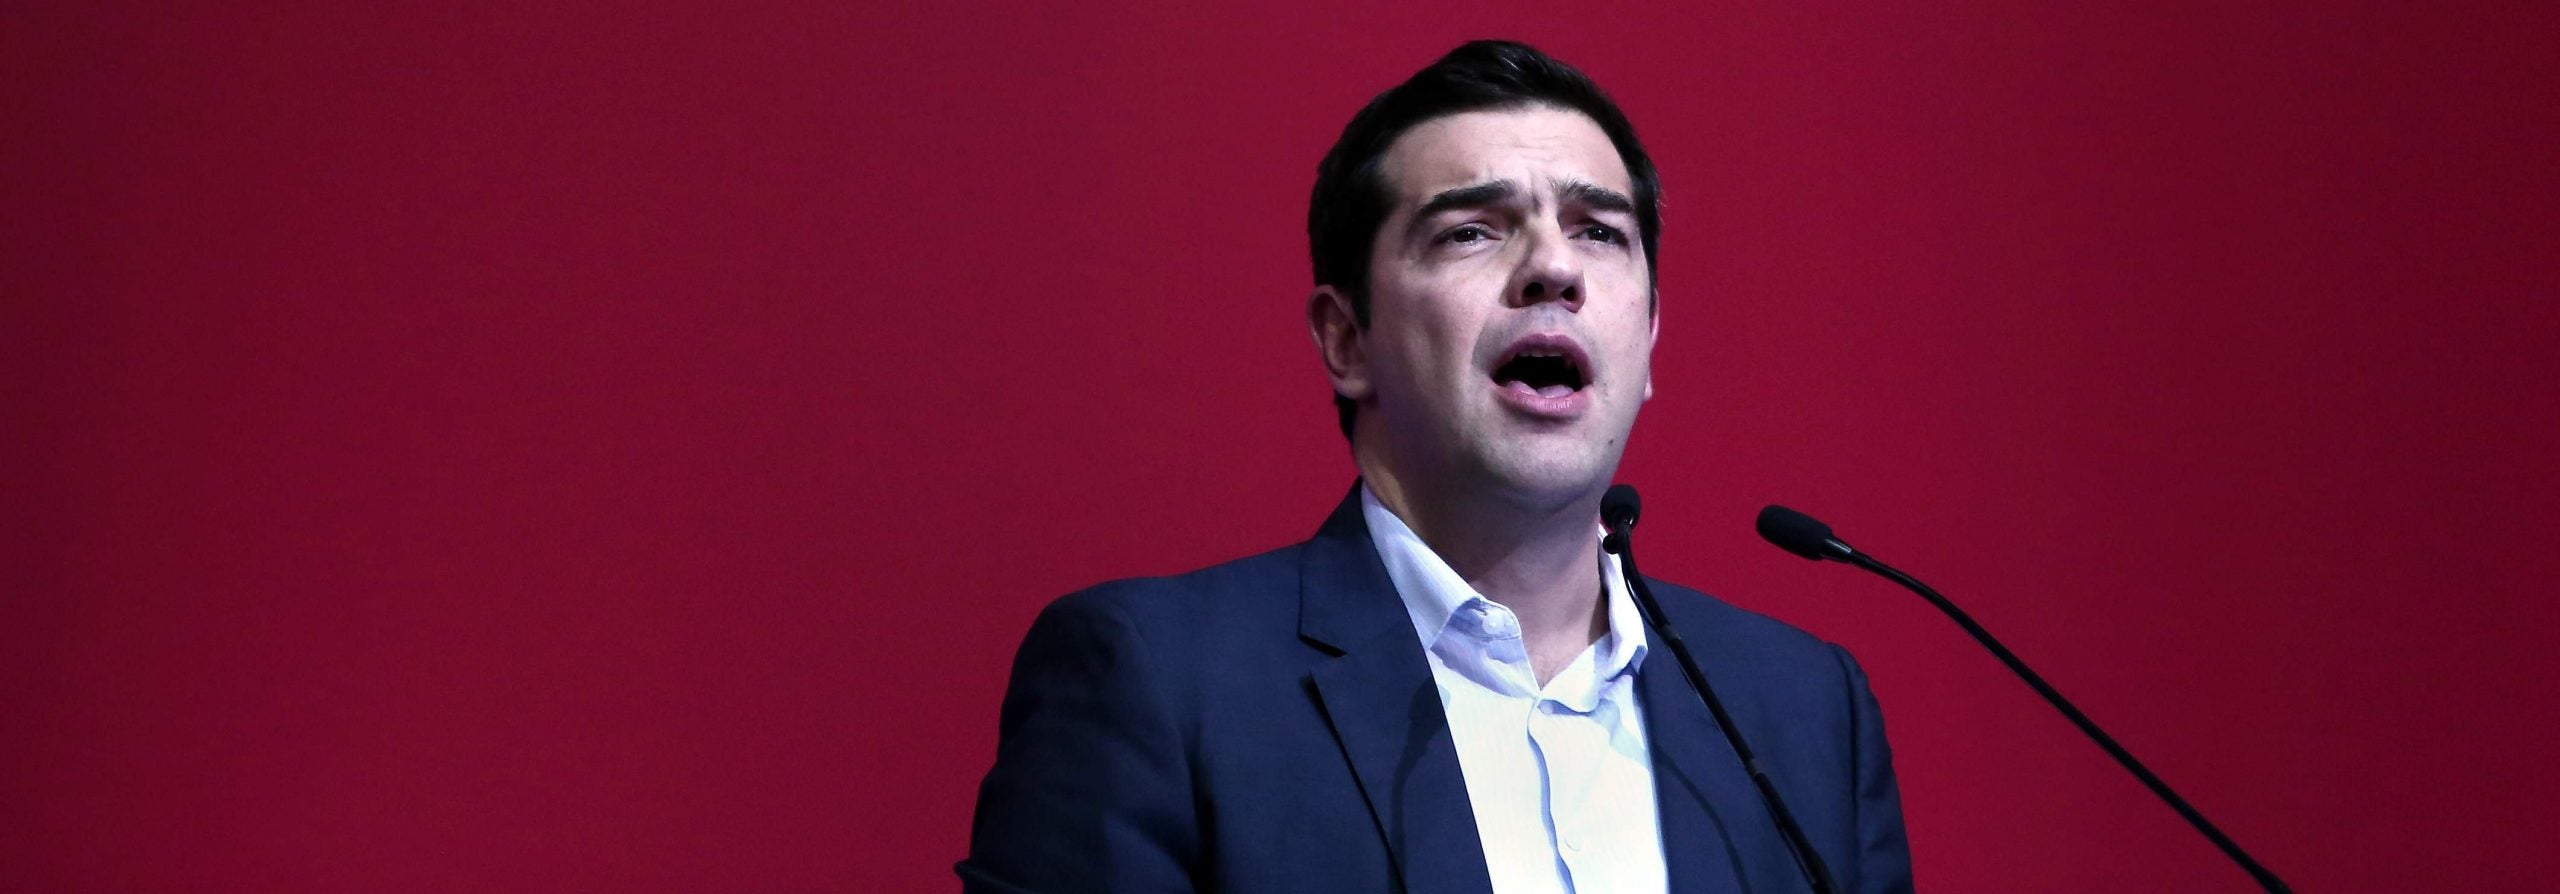 Tsipras' resignation has left Syriza in deep trouble